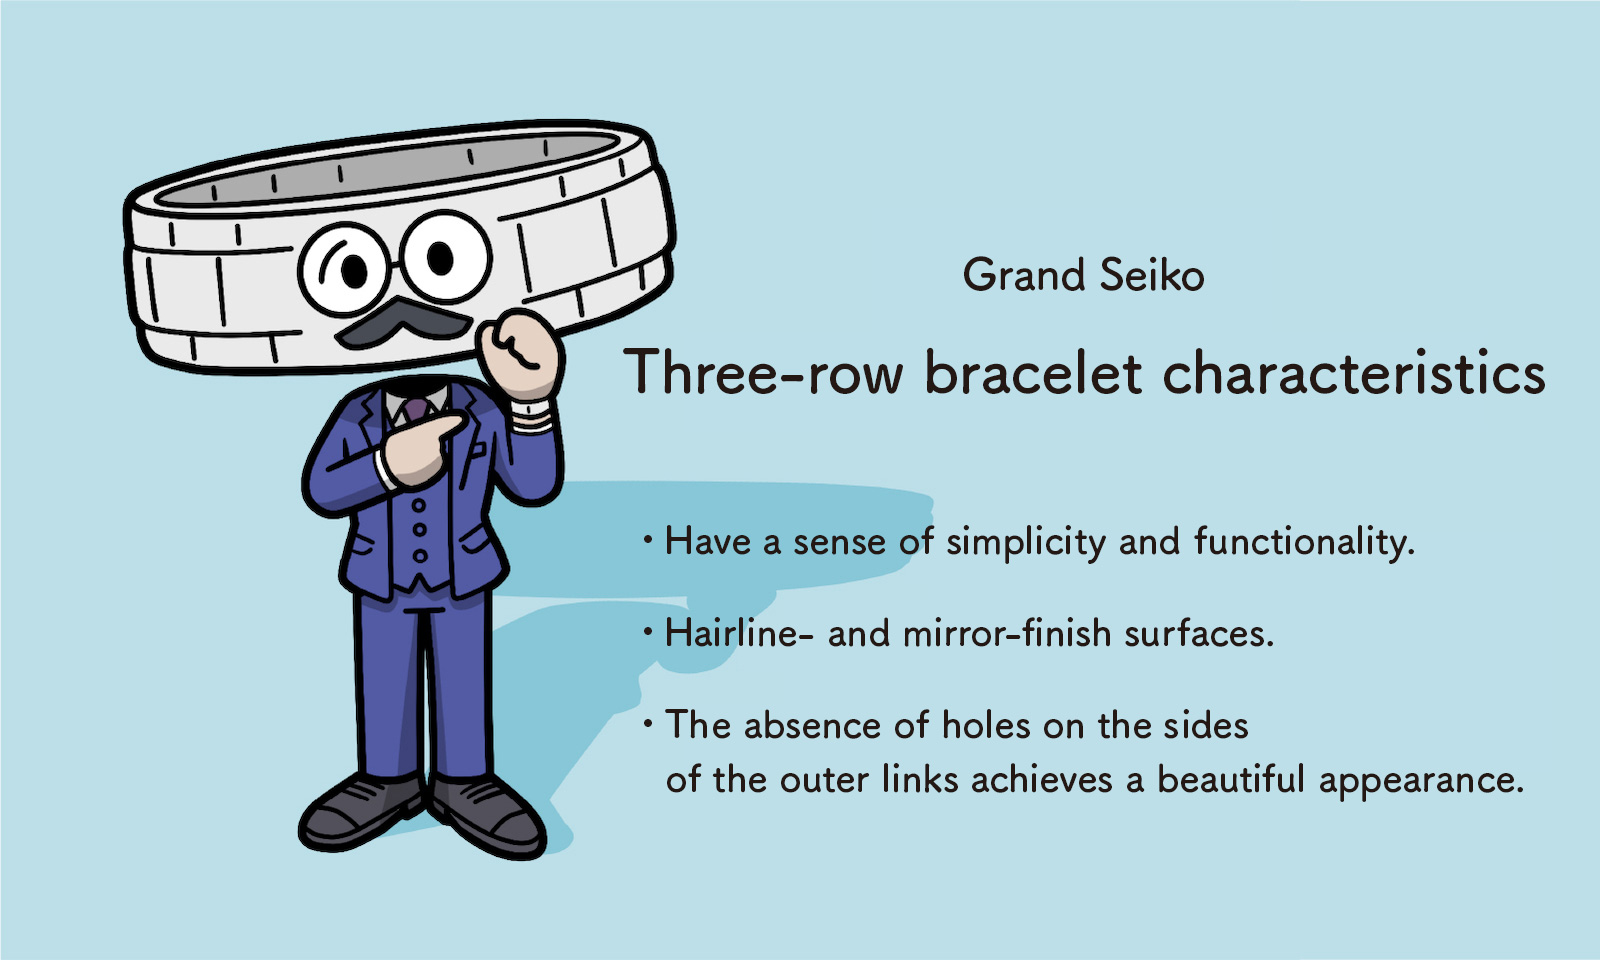 Grand Seiko: Three-row bracelet characteristics - Have a sense of simplicity and functionality - Hairline- and mirror-finish surfaces  The absence of holes on the sides of the outer links achieves a beautiful appearance